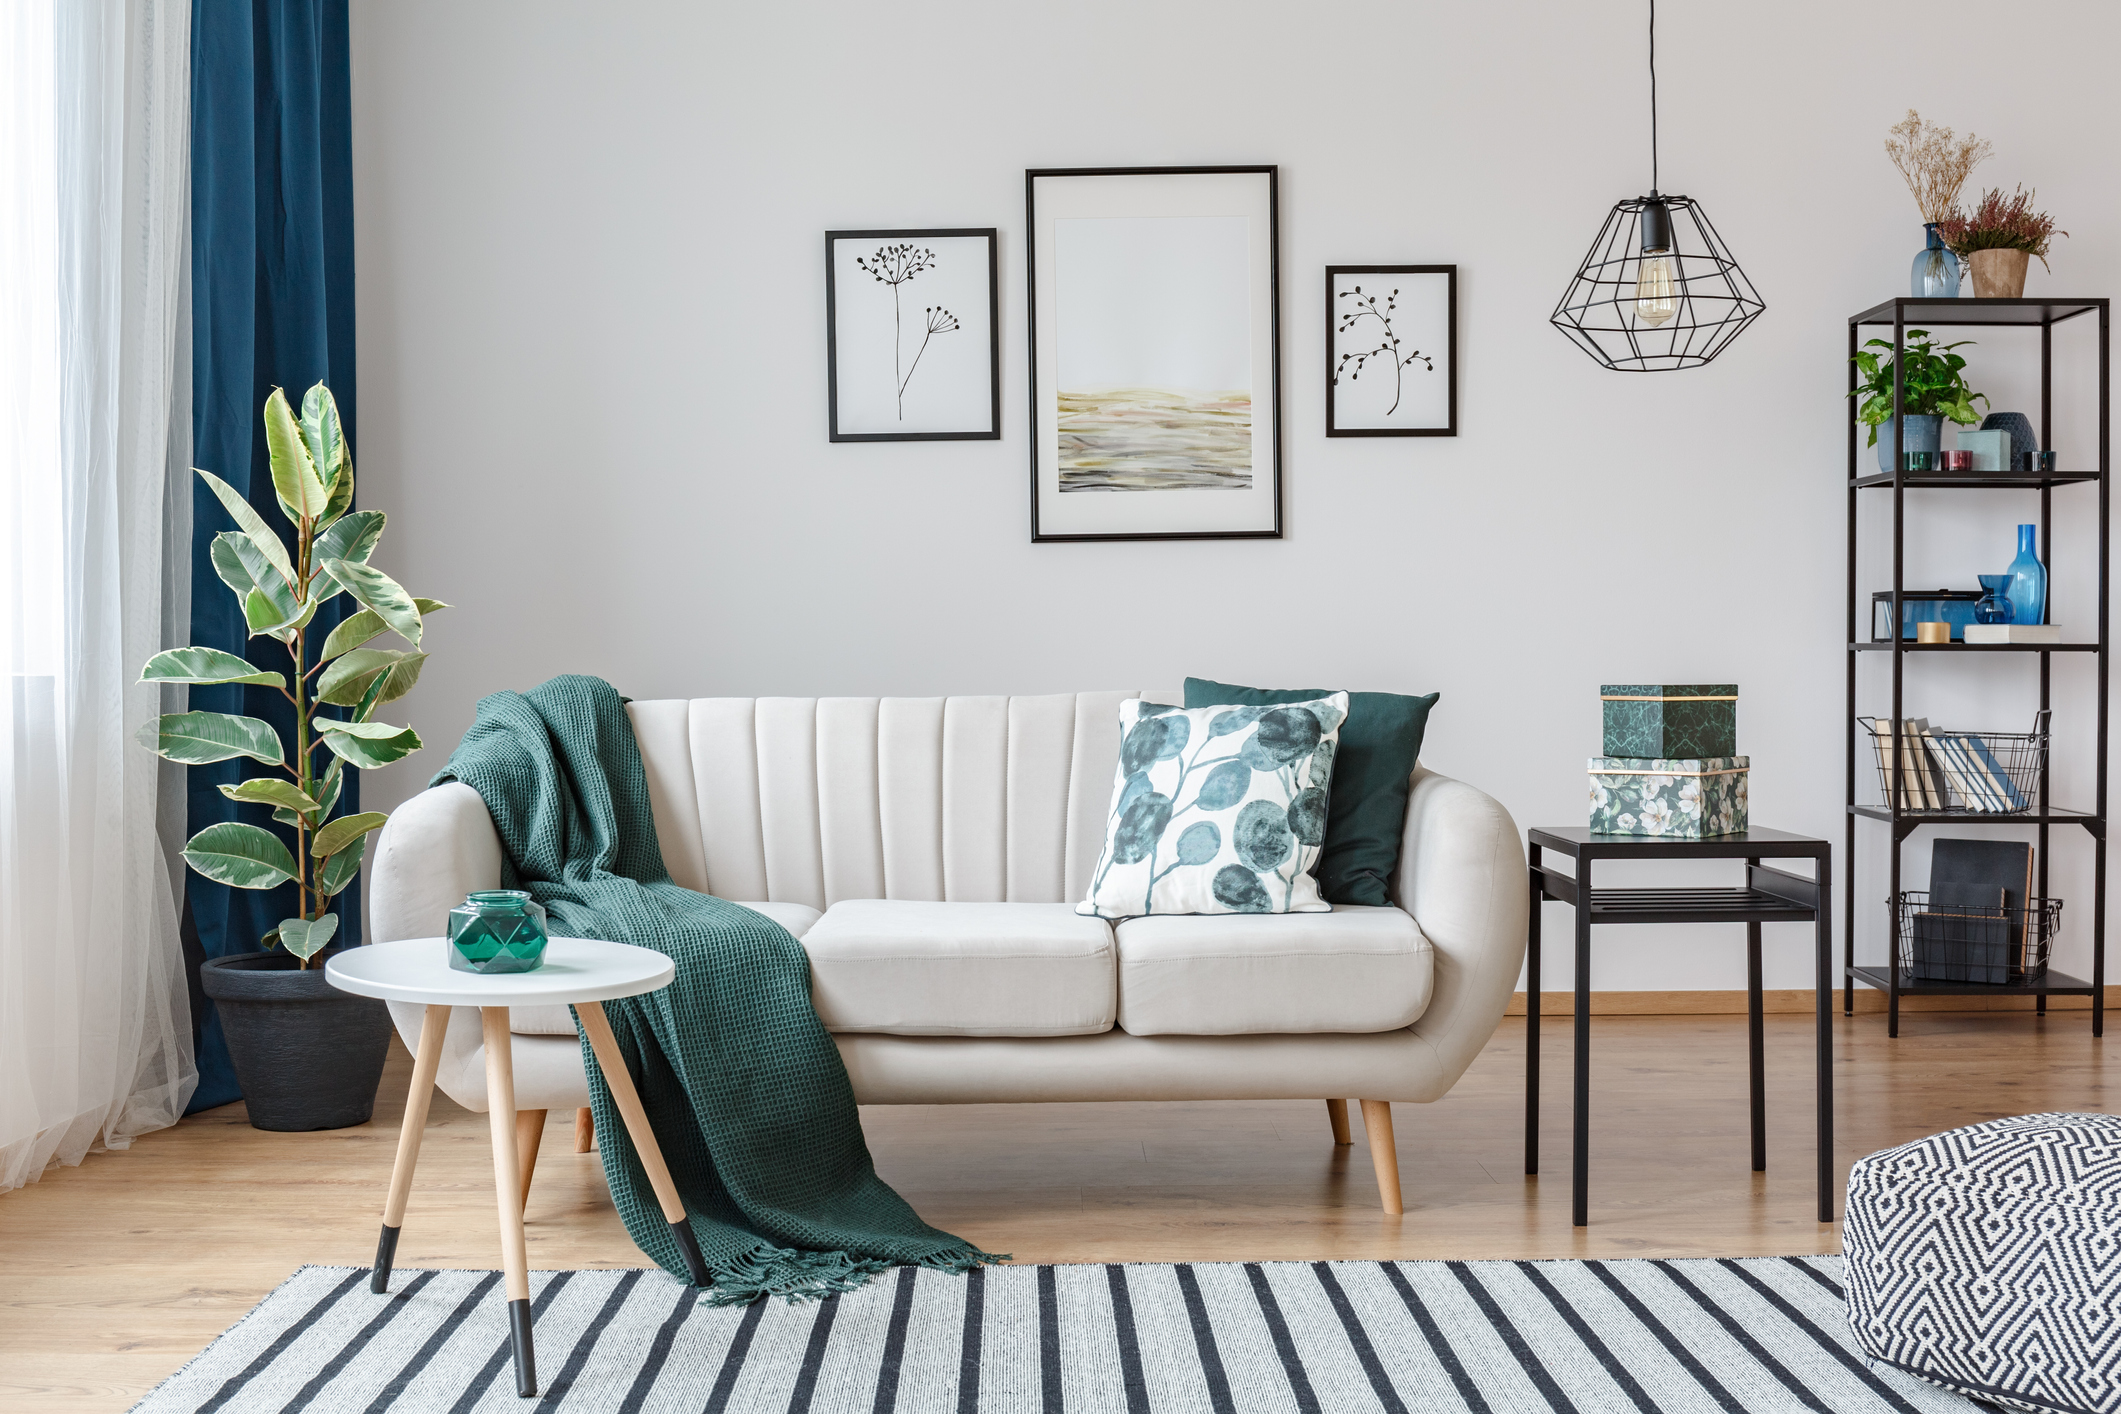 A stylishly decorated living room with green, black, and white accents.